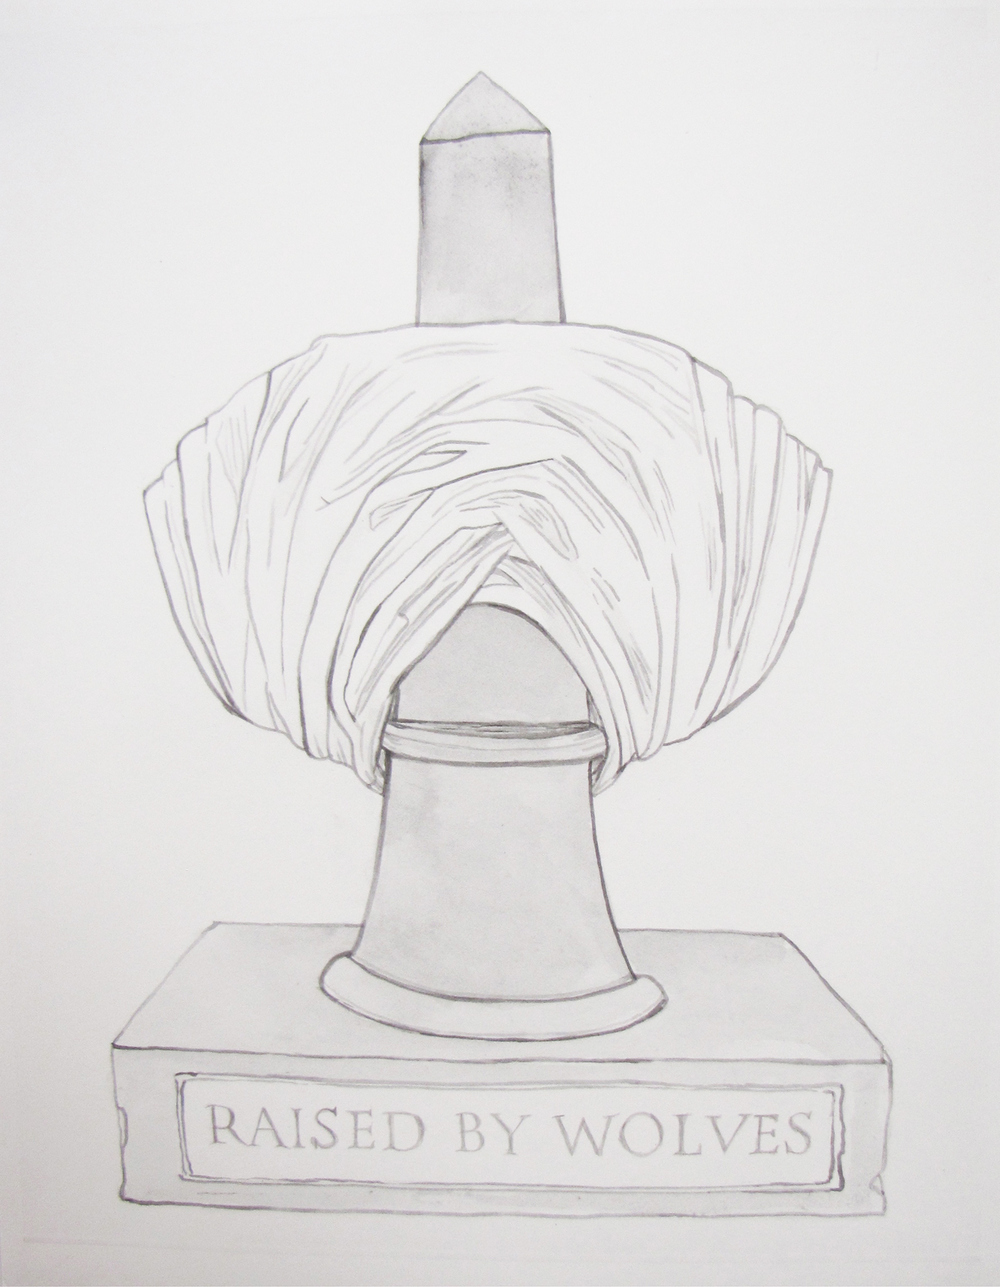 Bust/obelisk III (Raised by wolves) 2012